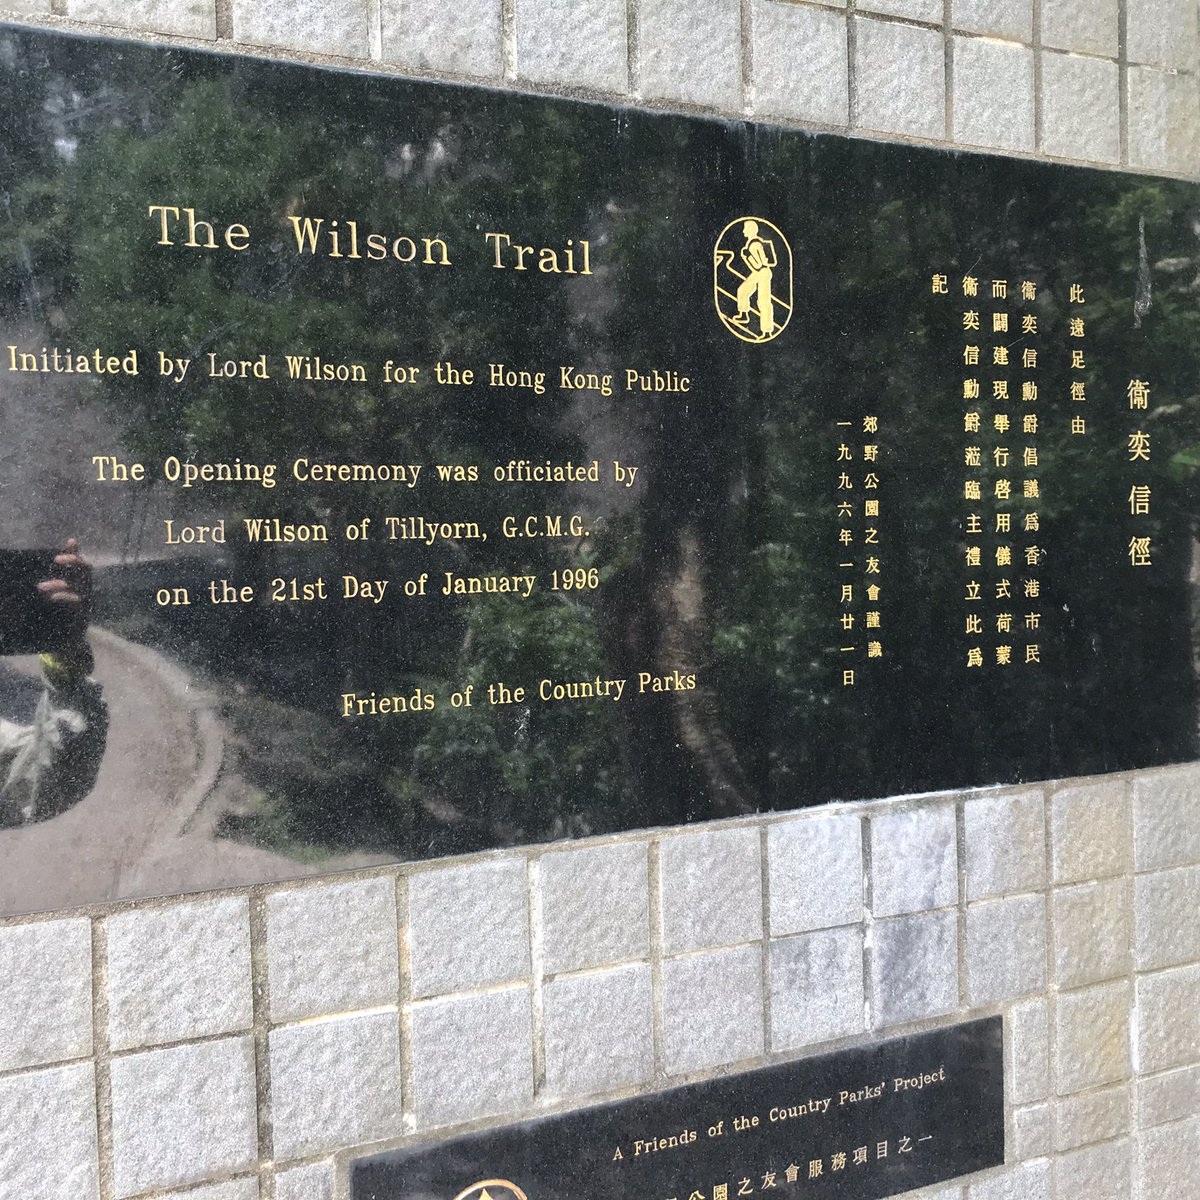 The Wilson Trail initiated by Lord Wilson for the Hong Kong public opened on the 21st Day of January 1996